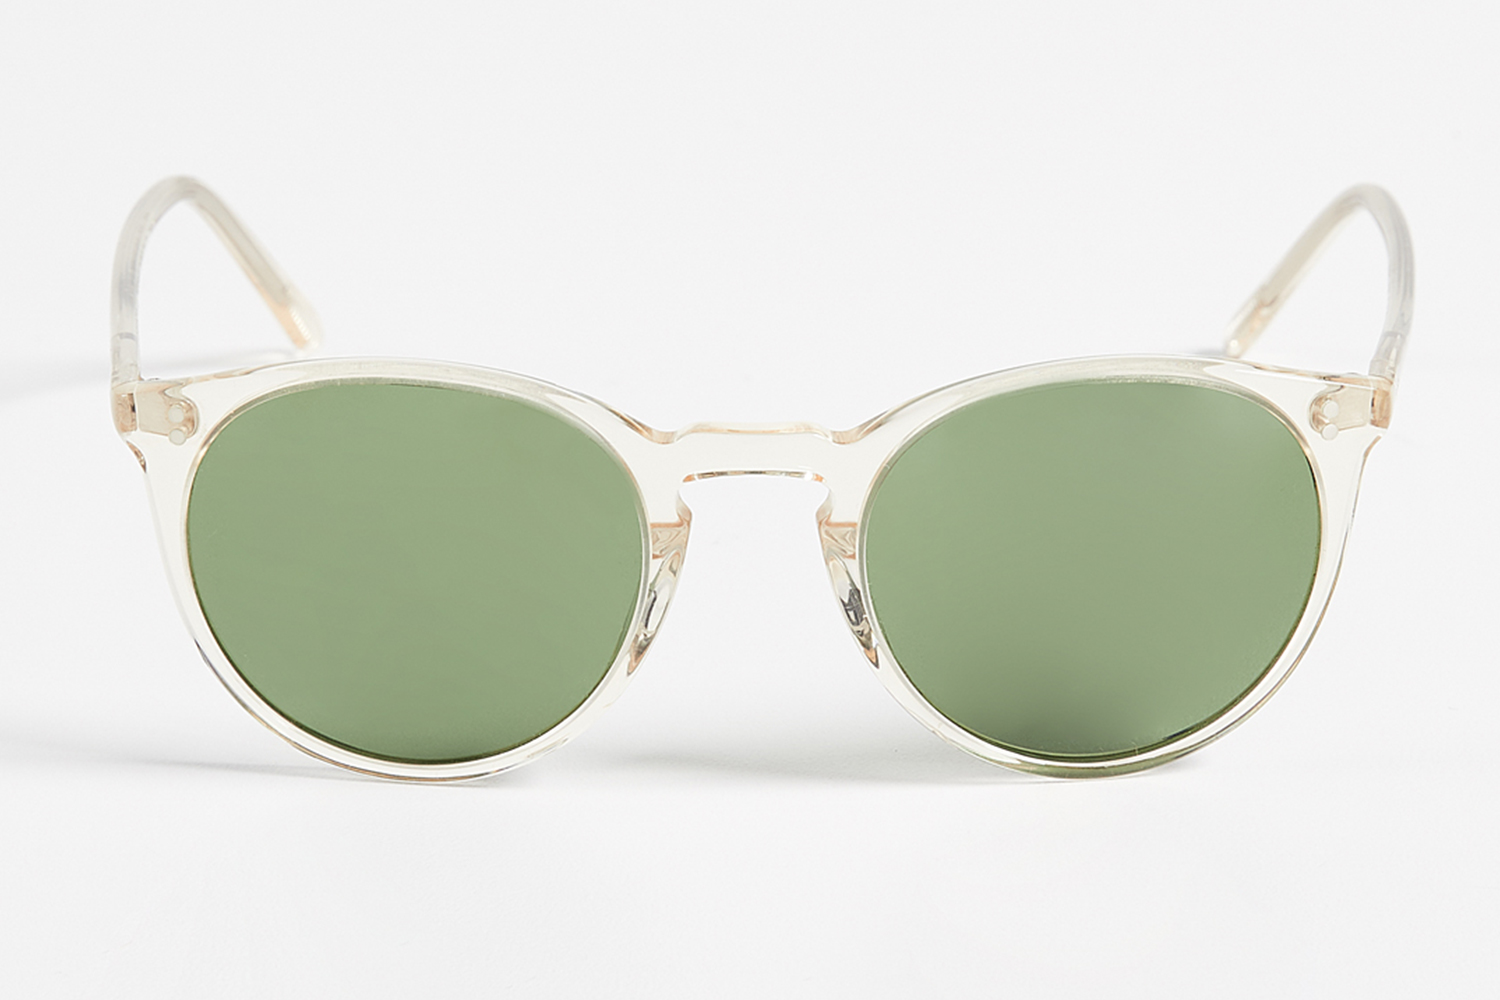 Oliver Peoples O'Malley Sunglasses Sale American Psycho